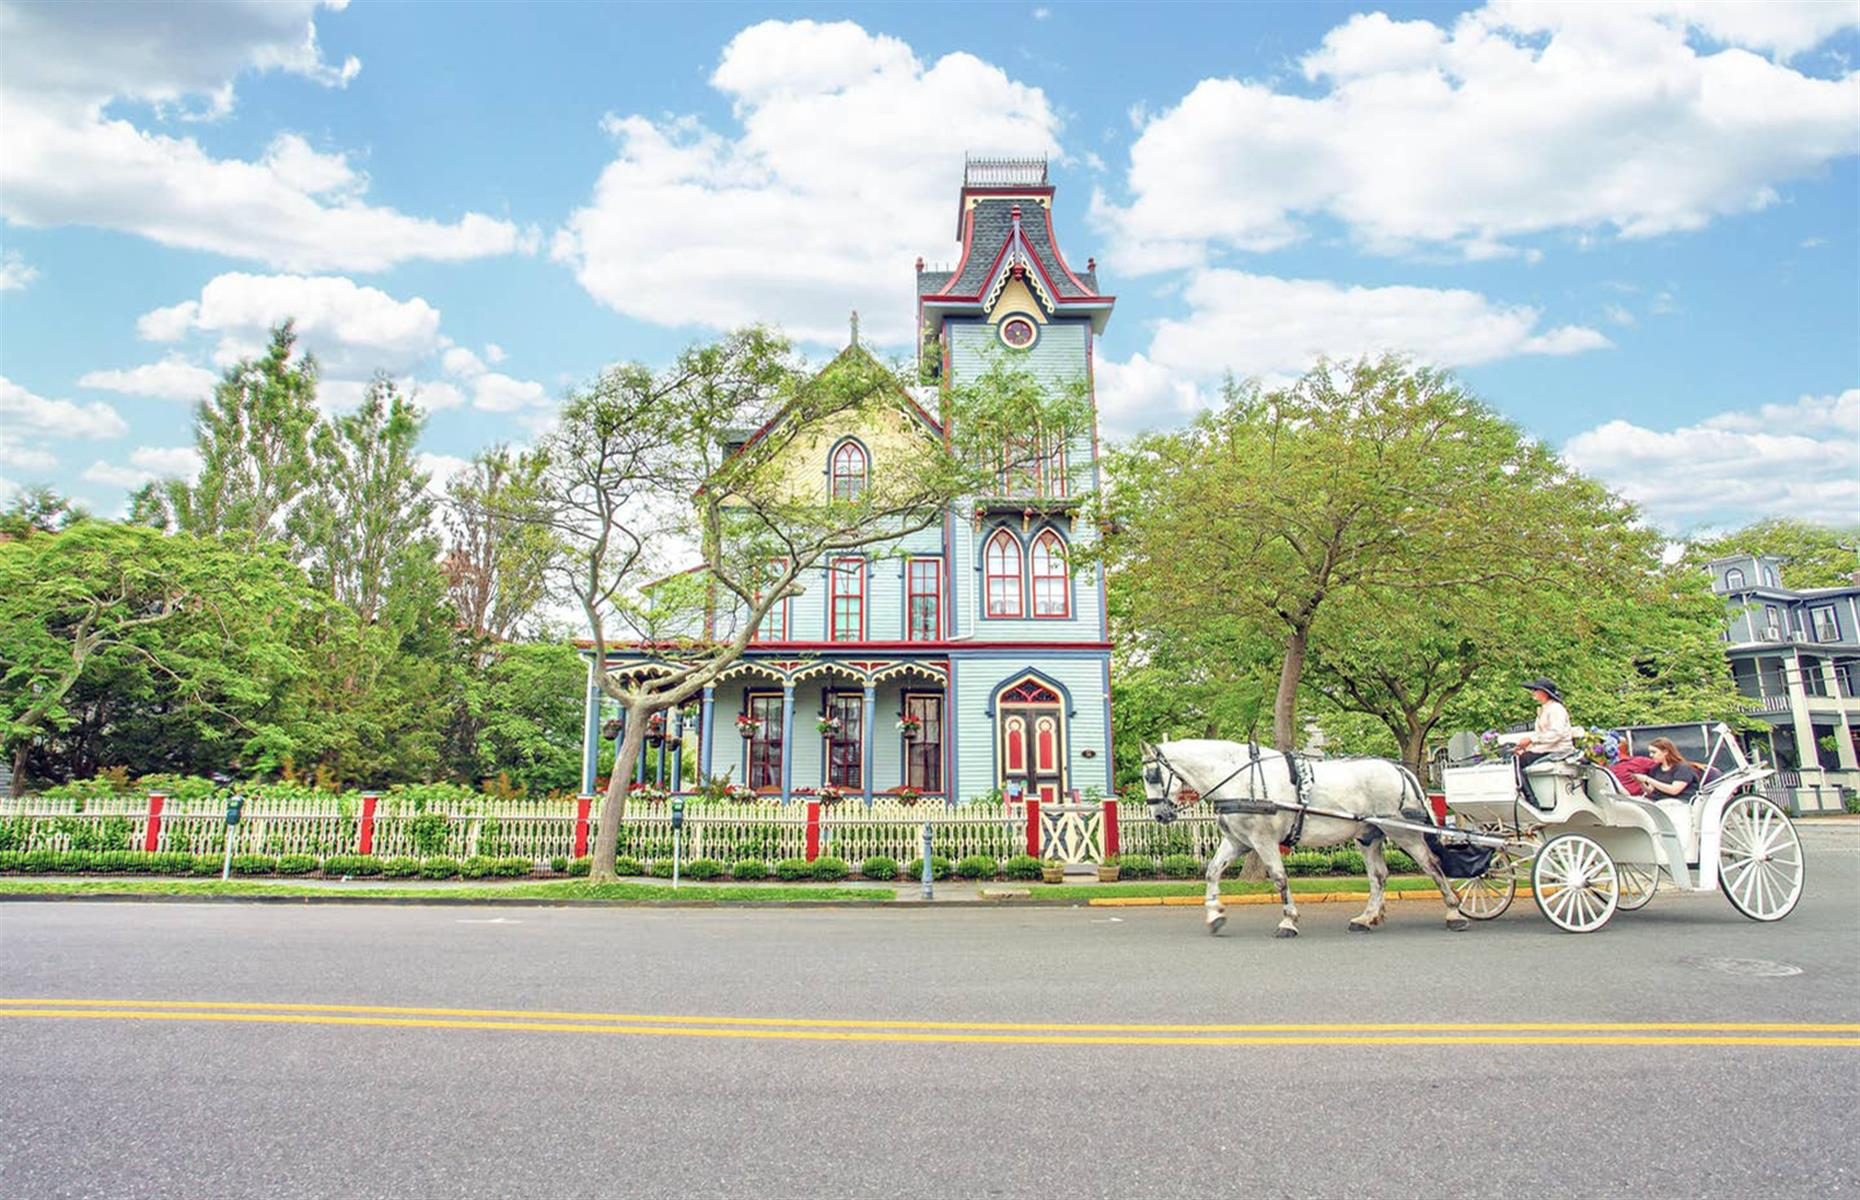 Slide 32 of 52: Located in the heart of Cape May's historic district, this charming late Victorian villa offers nine bedrooms that are all individually decorated and named after American cities, like Savannah, New Orleans and San Francisco. The beautiful home has a gorgeous patio too and is centrally located with easy access to restaurants and the beach.